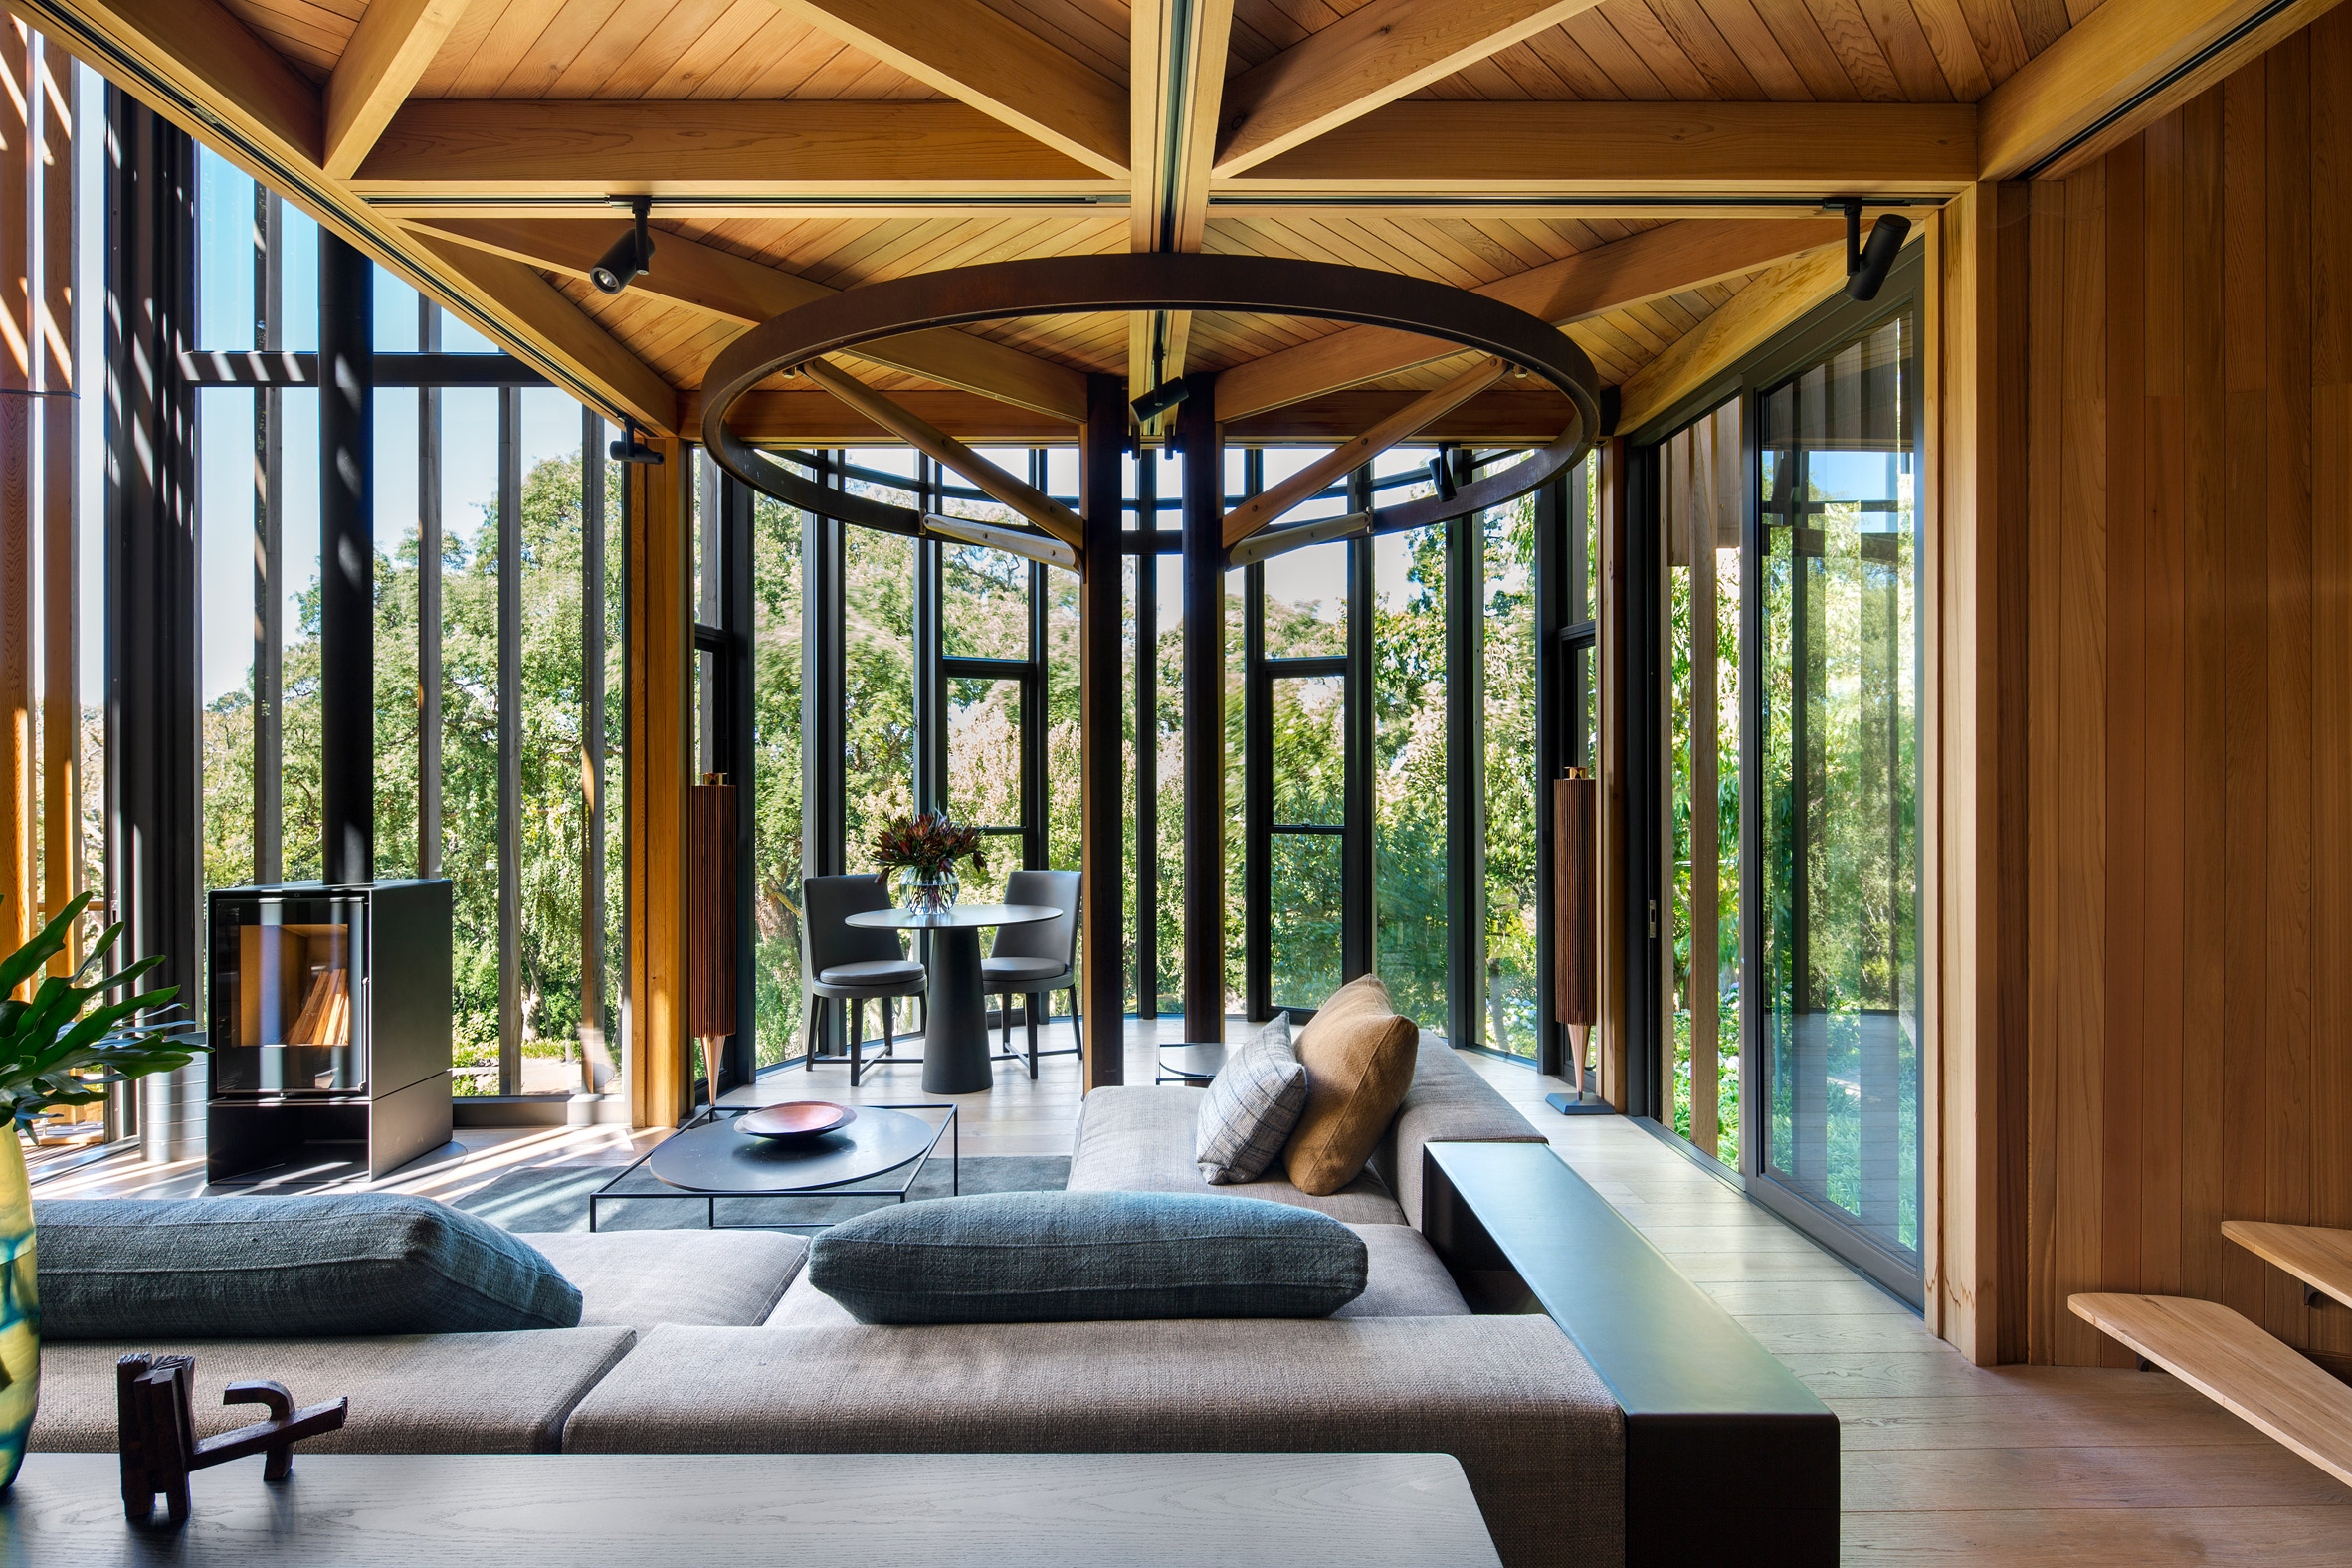 paarman-tree-house-by-mv-architecture-residential_dezeen_2364_col_2.jpg